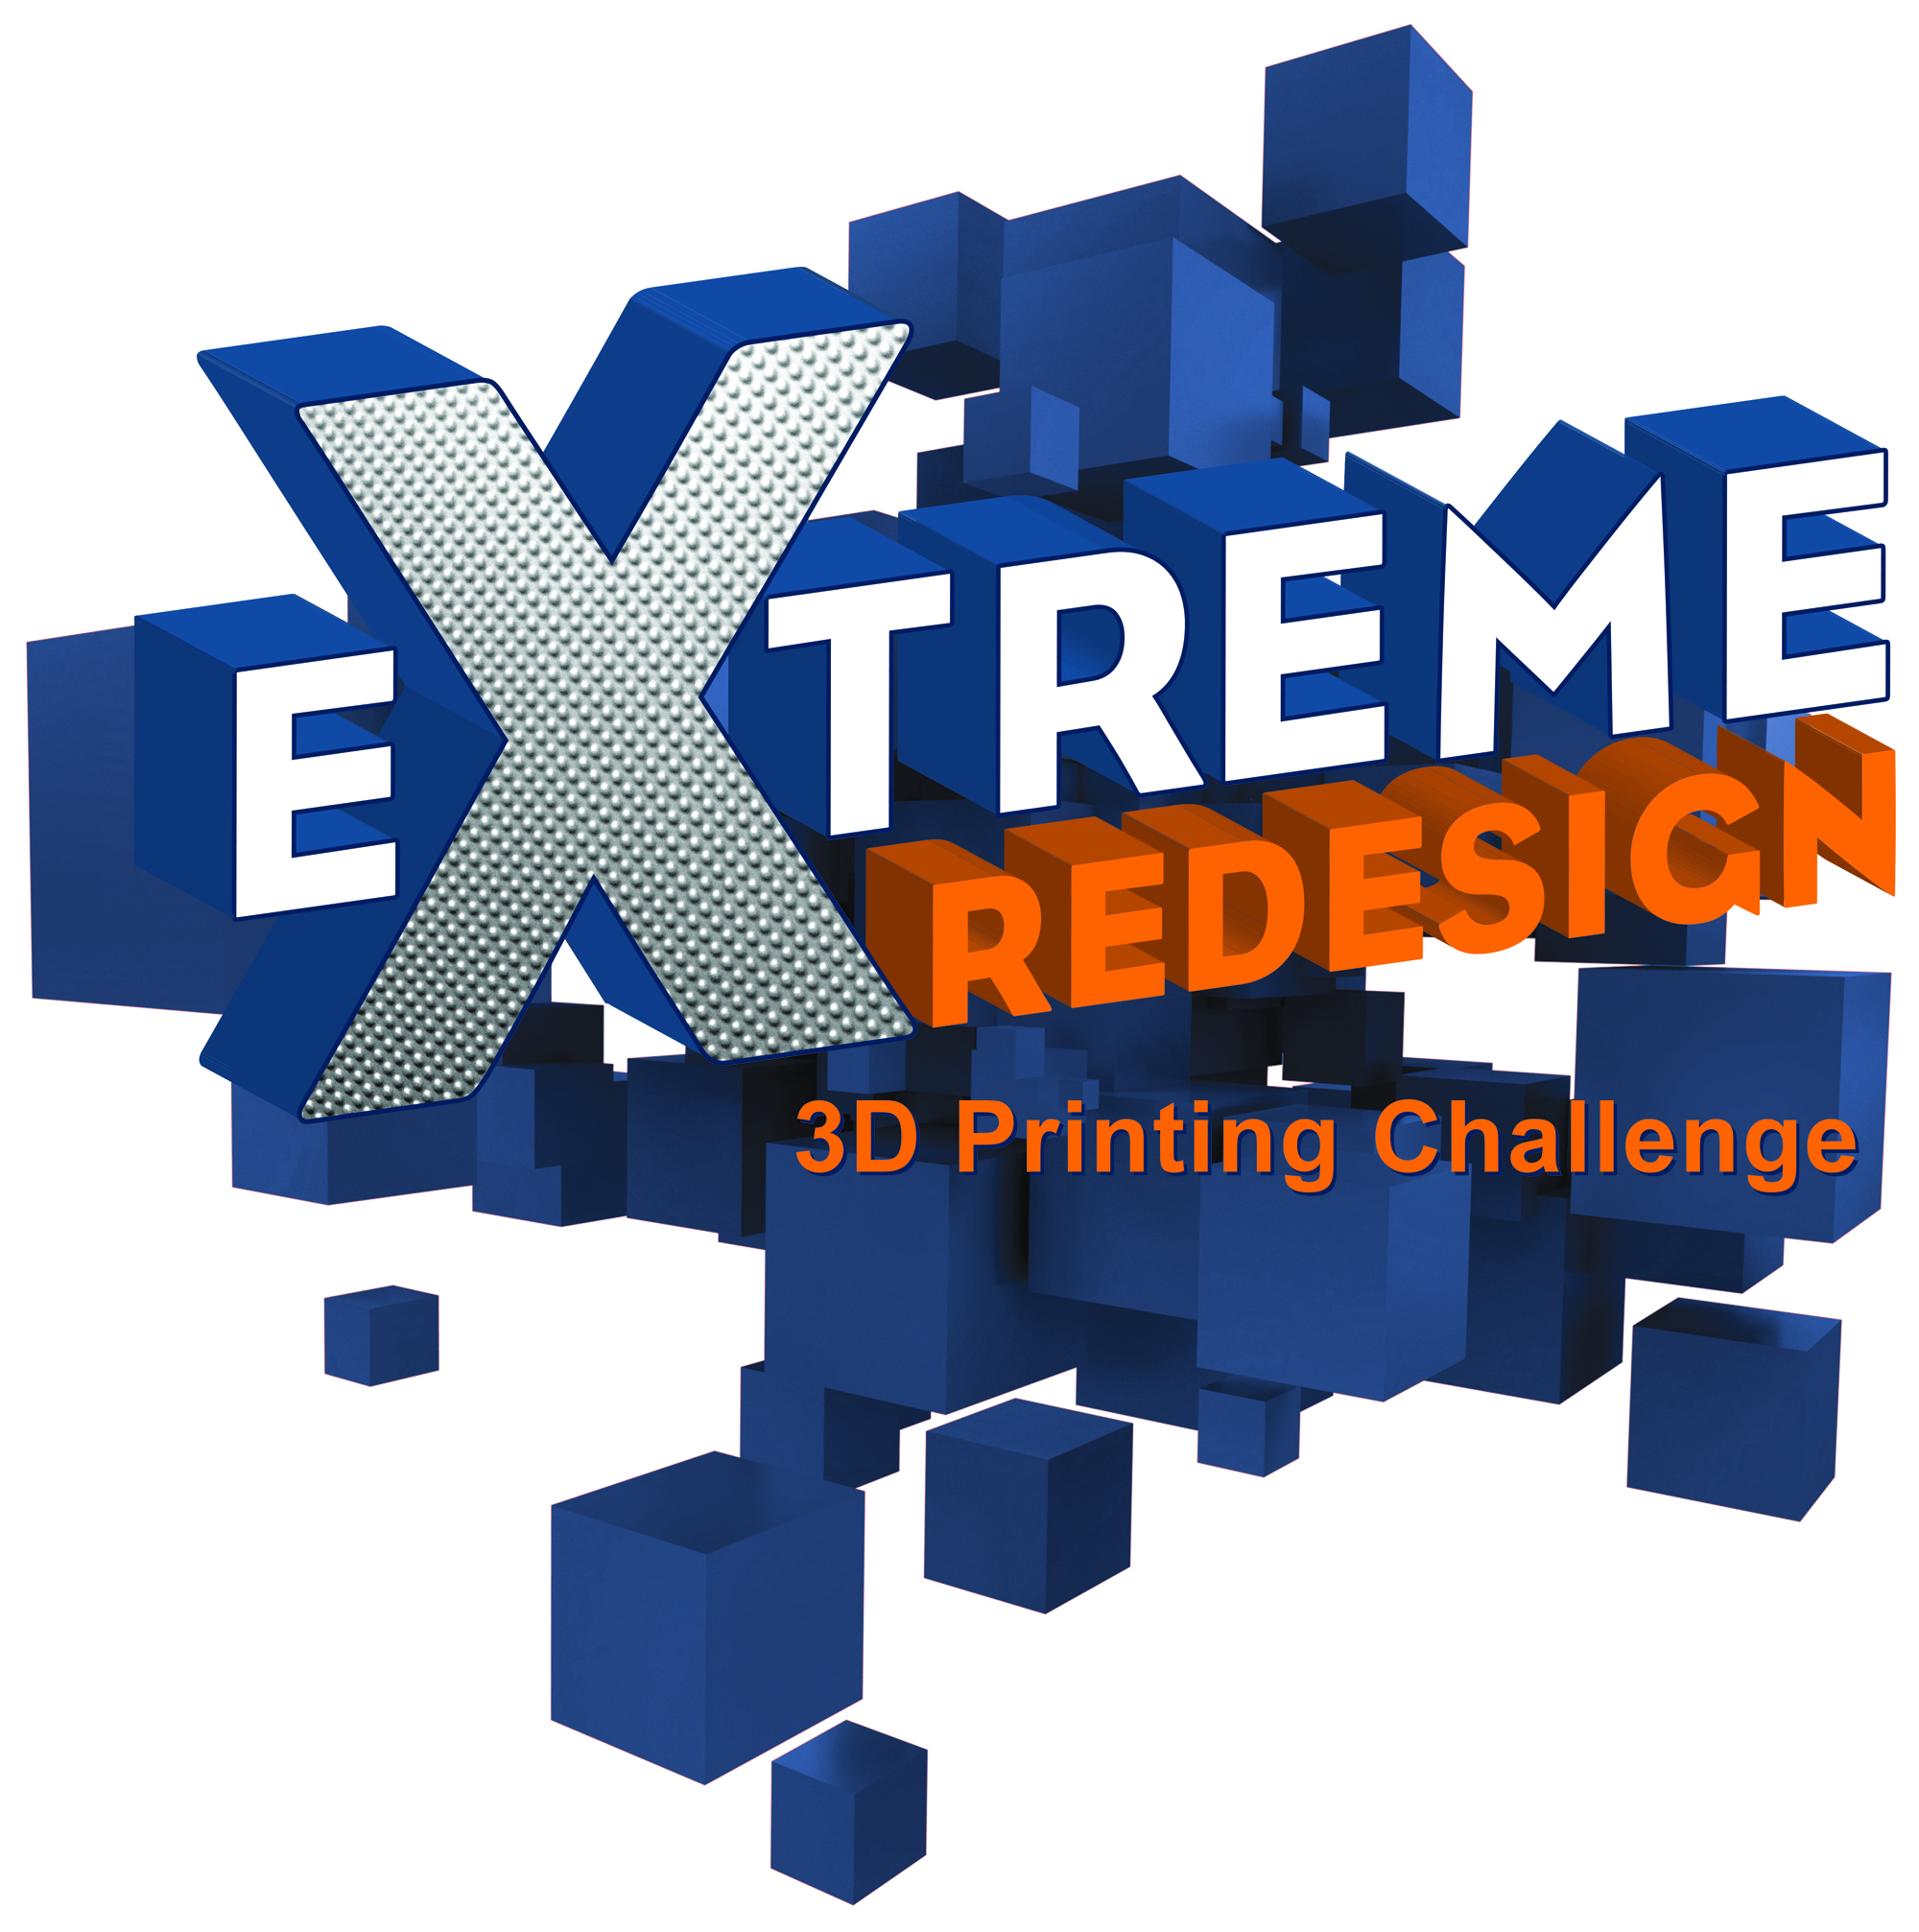 Enter the 2015 Extreme Redesign Challenge